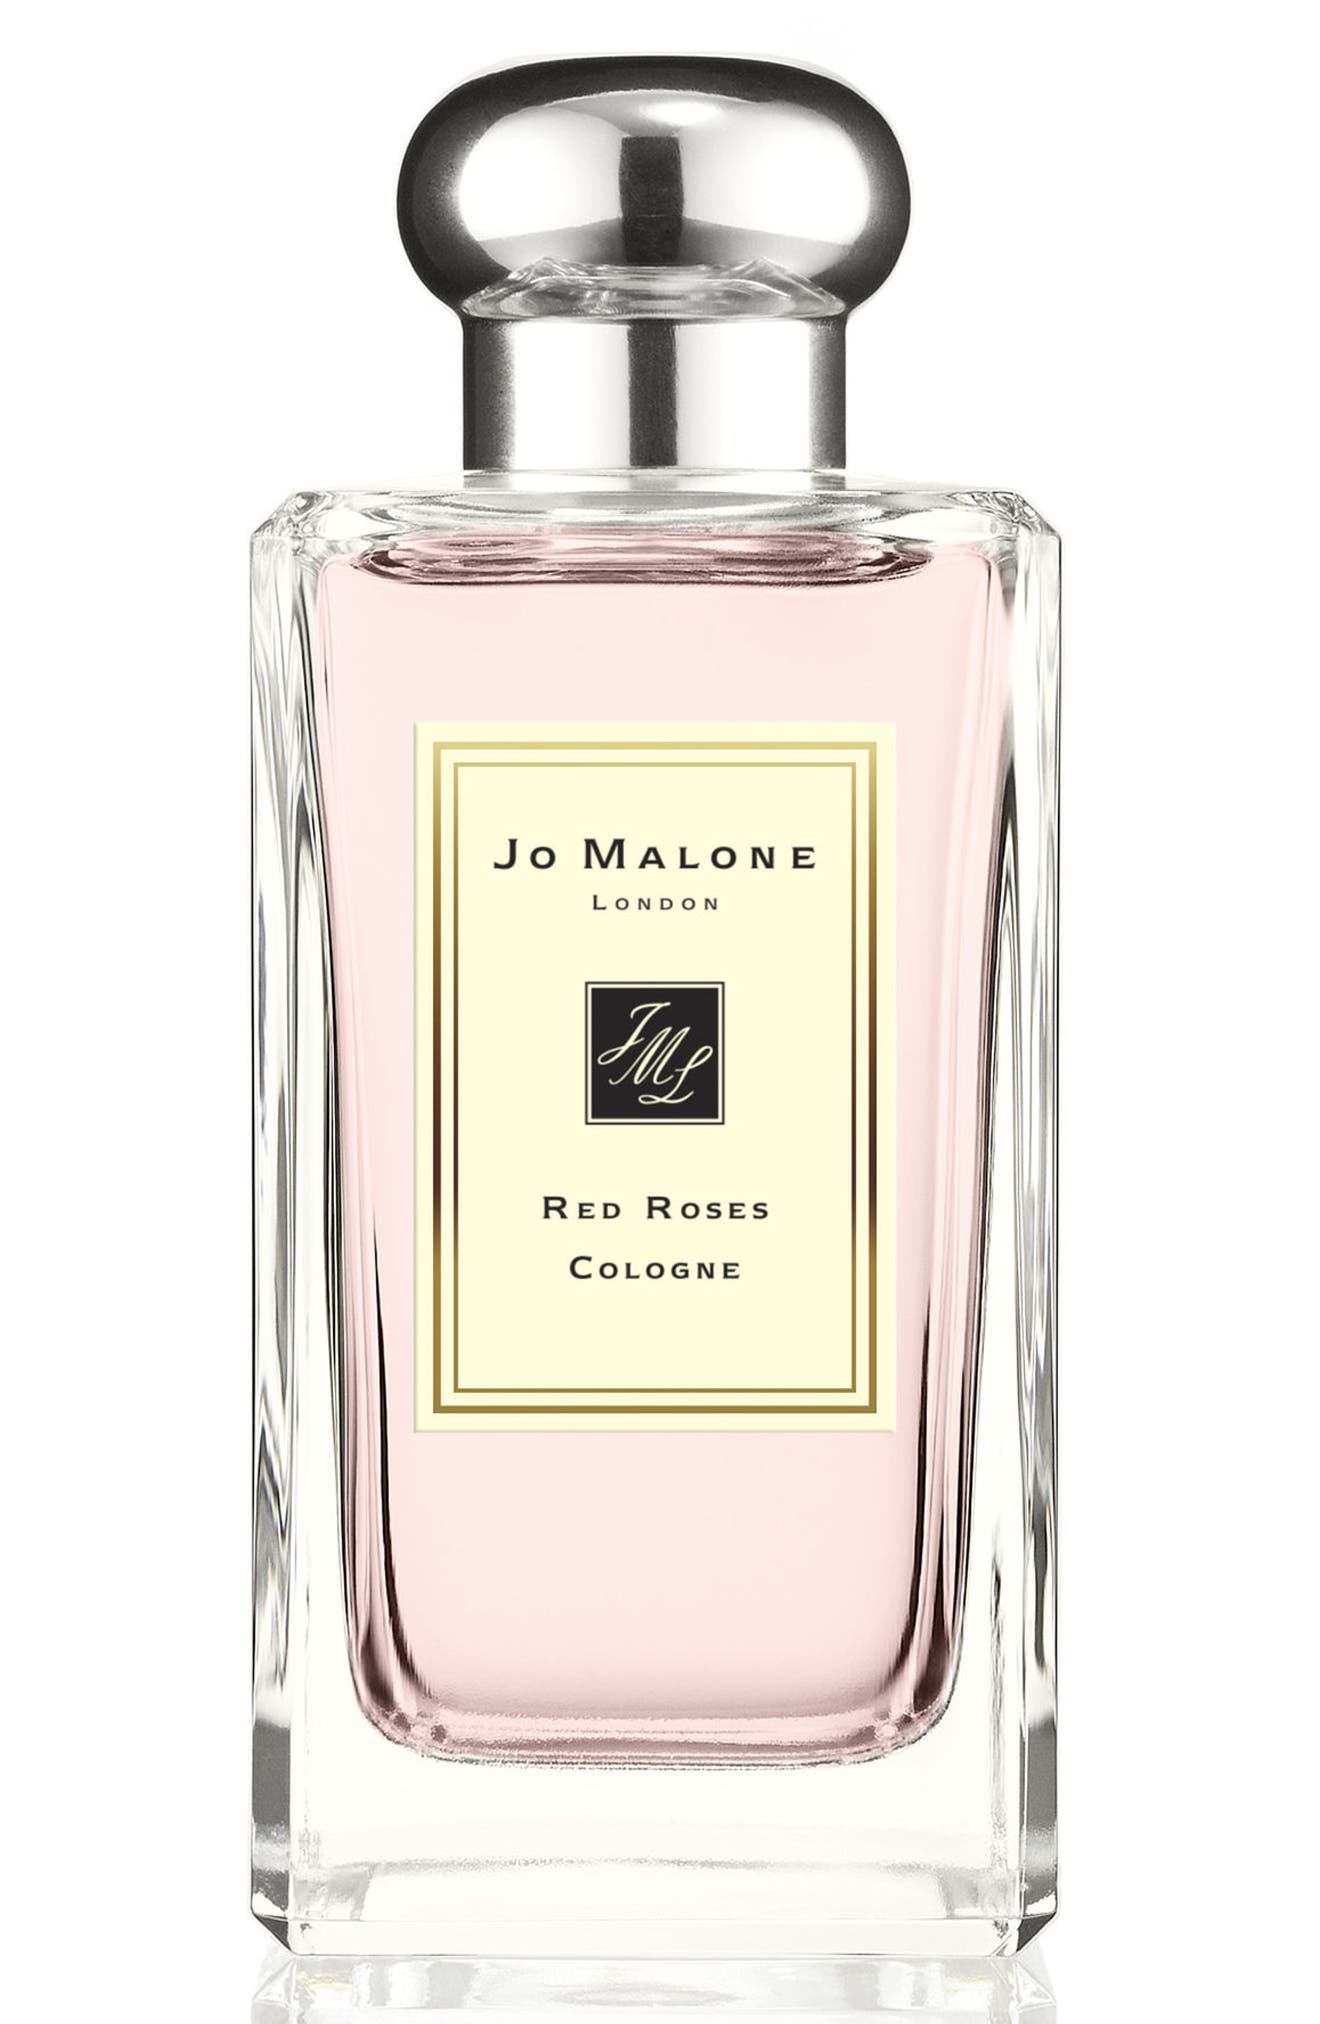 Jo Malone London™ 'Red Roses' Cologne (3.4 oz.)